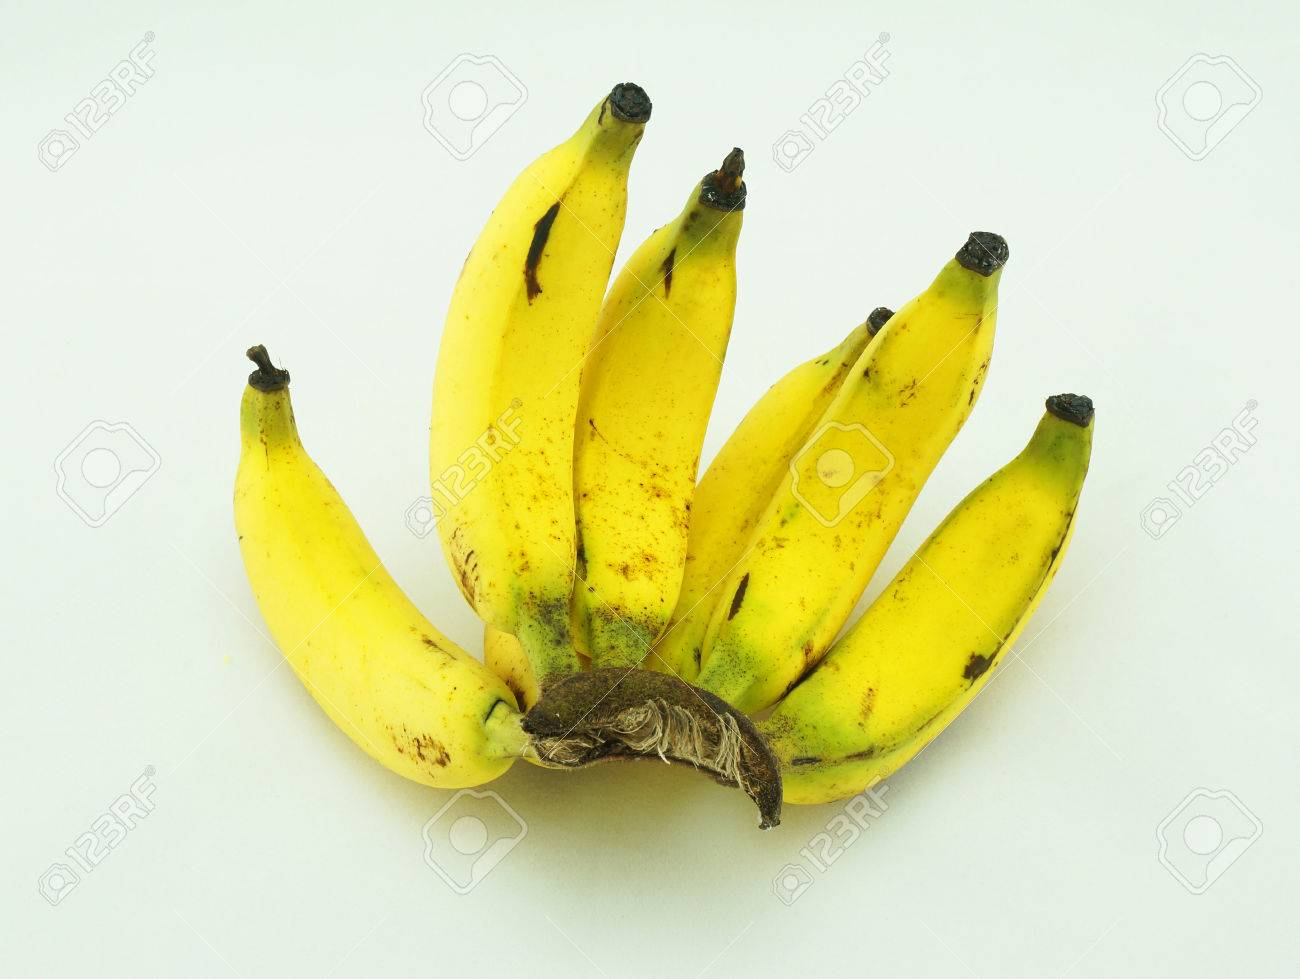 Thai Banana They Are Small And Skinny Size Yellow Color Very